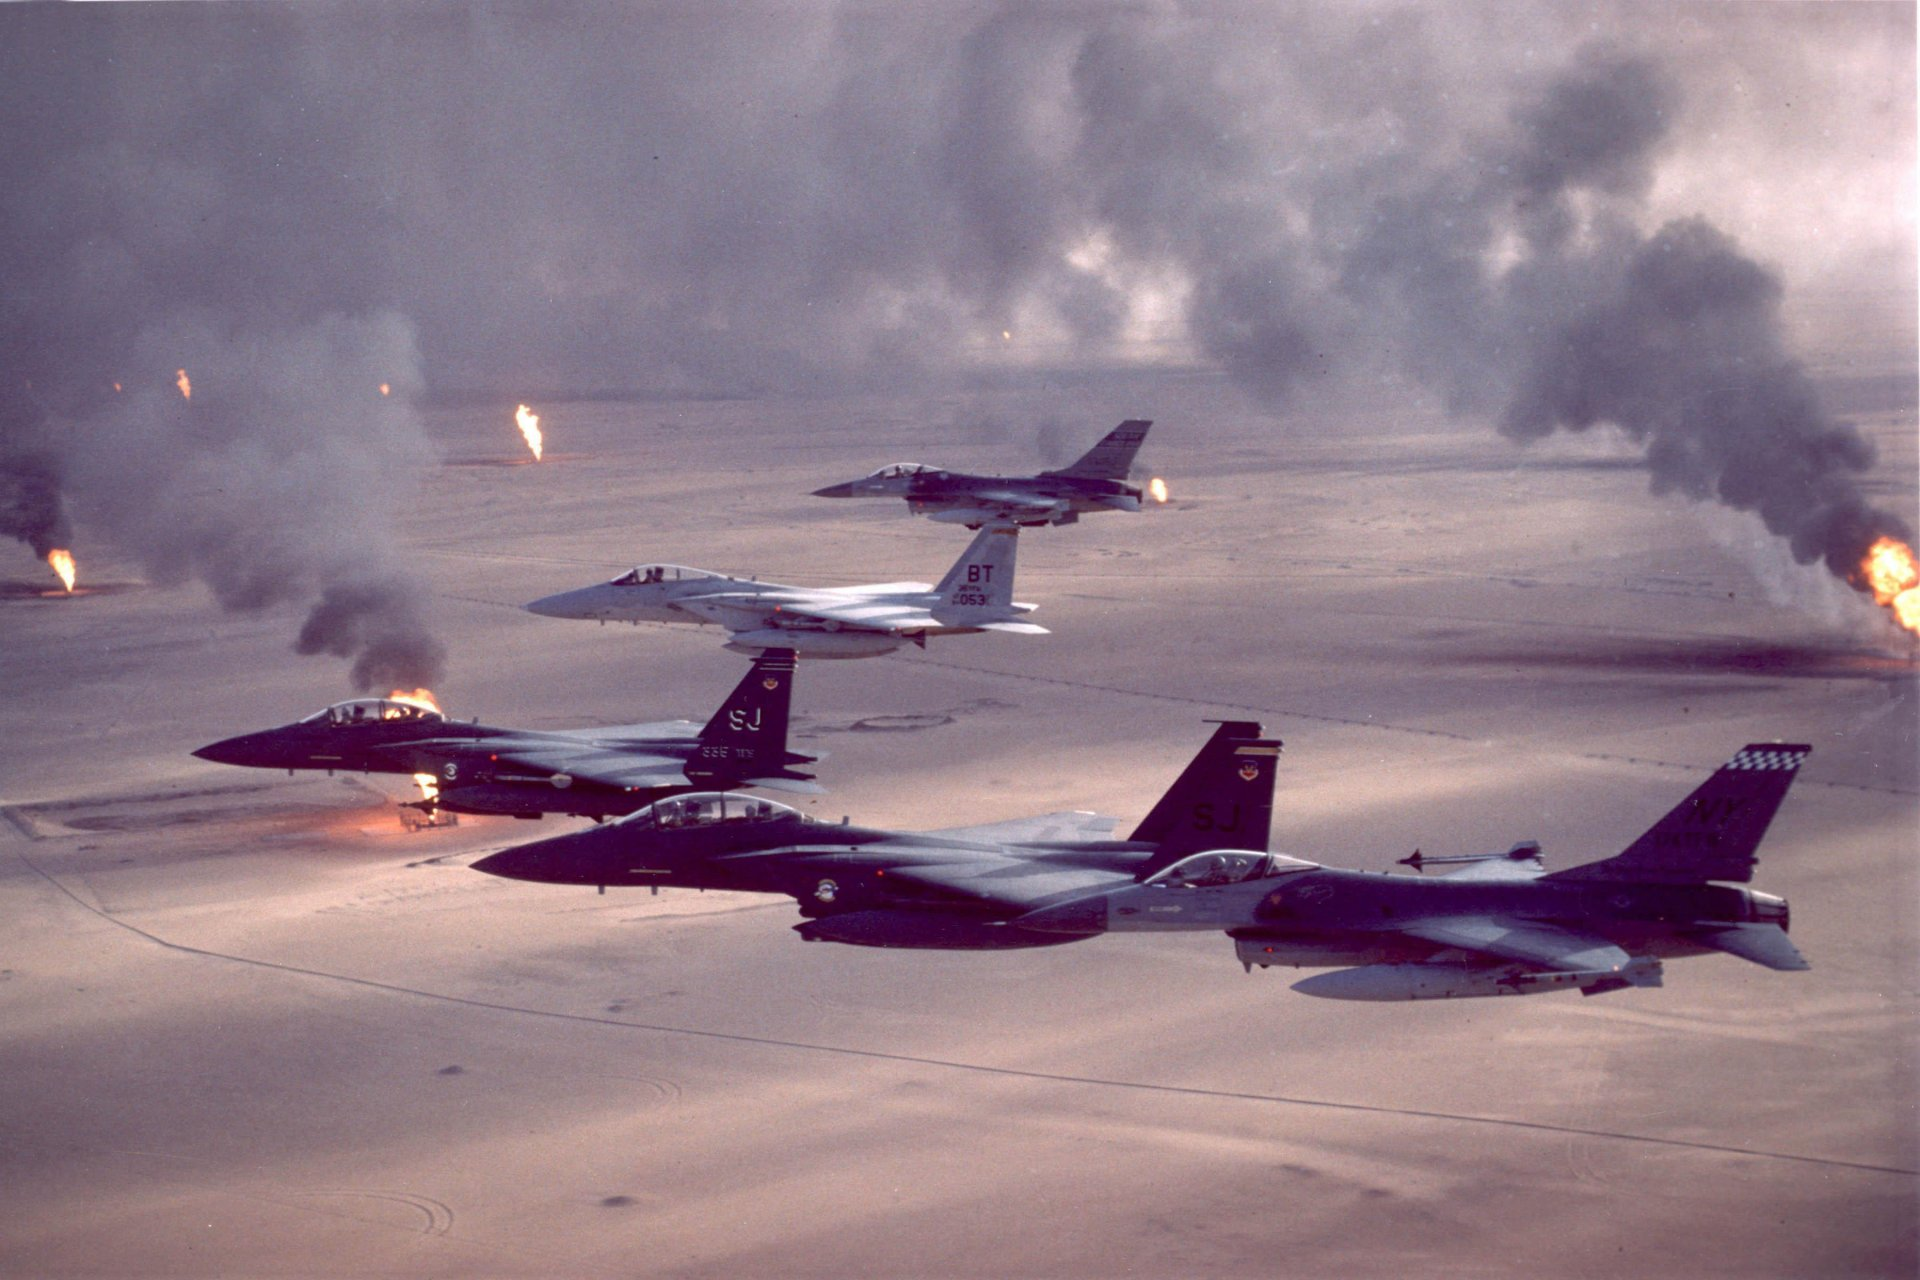 F-16A Fighting Falcon, F-15C Eagle and F-15E Strike Eagle fighter aircraft fly over burning oil field sites in Kuwait during Operation Desert Storm. (U.S. Air Force archive photo.)